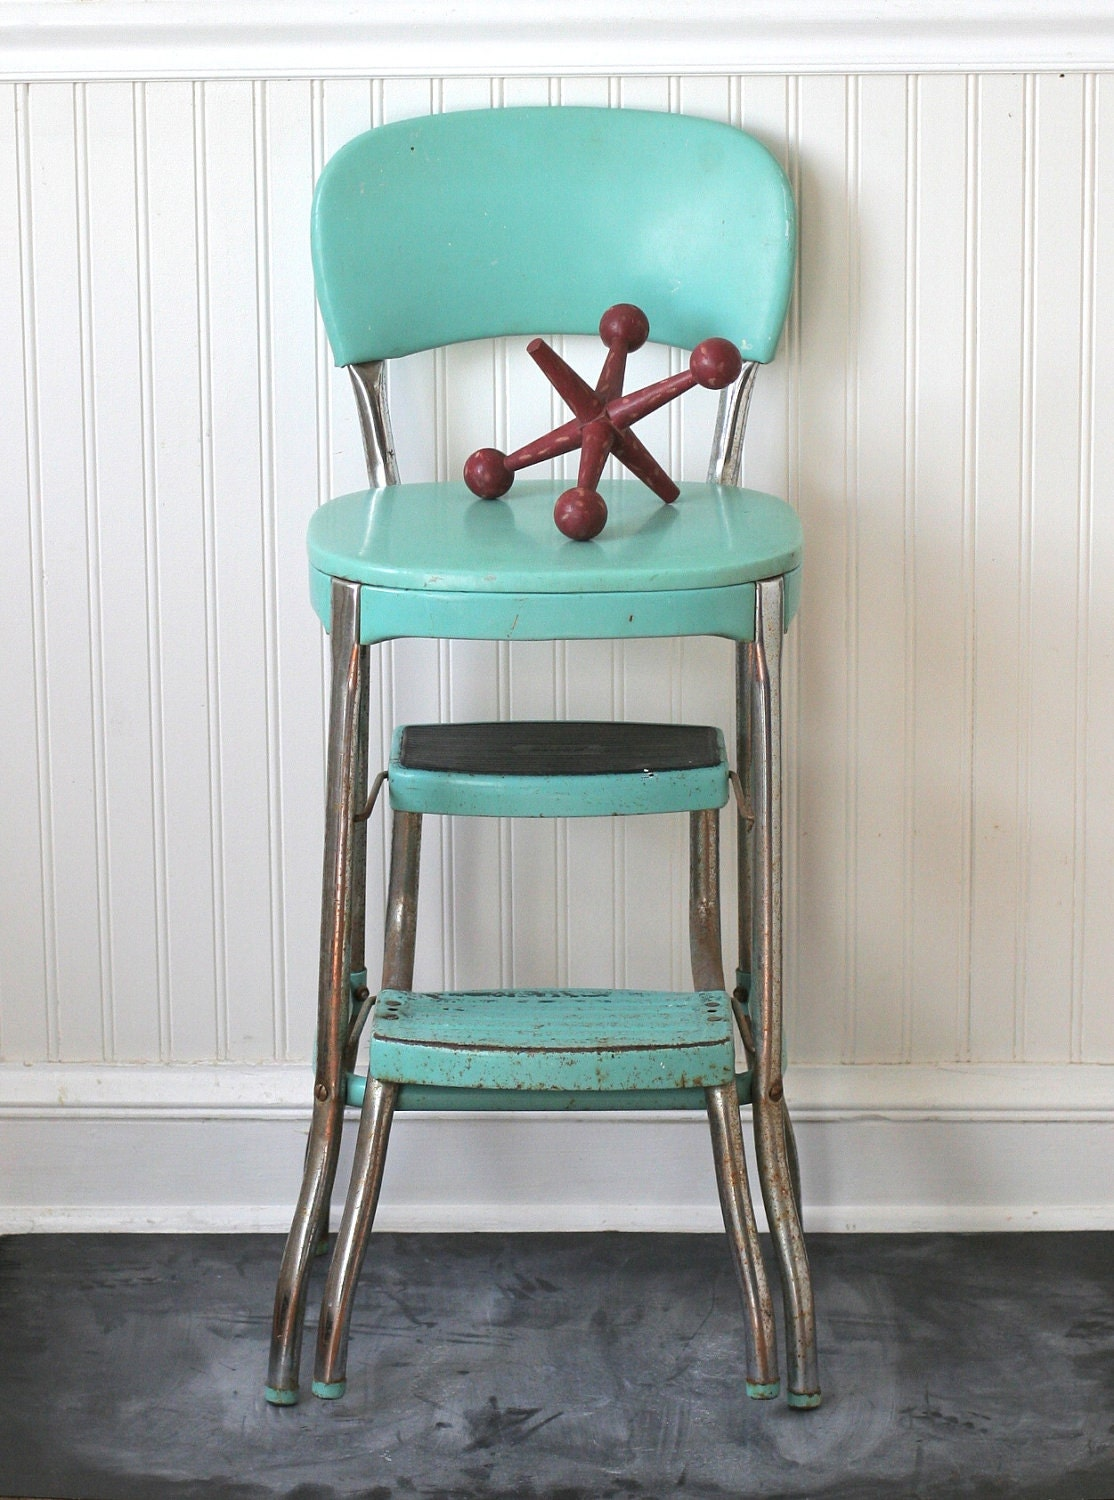 Circa 1950s Cosco Fold Out Step Stool Chair Aqua Turquoise : ilfullxfull332771940 from www.etsy.com size 1114 x 1500 jpeg 310kB